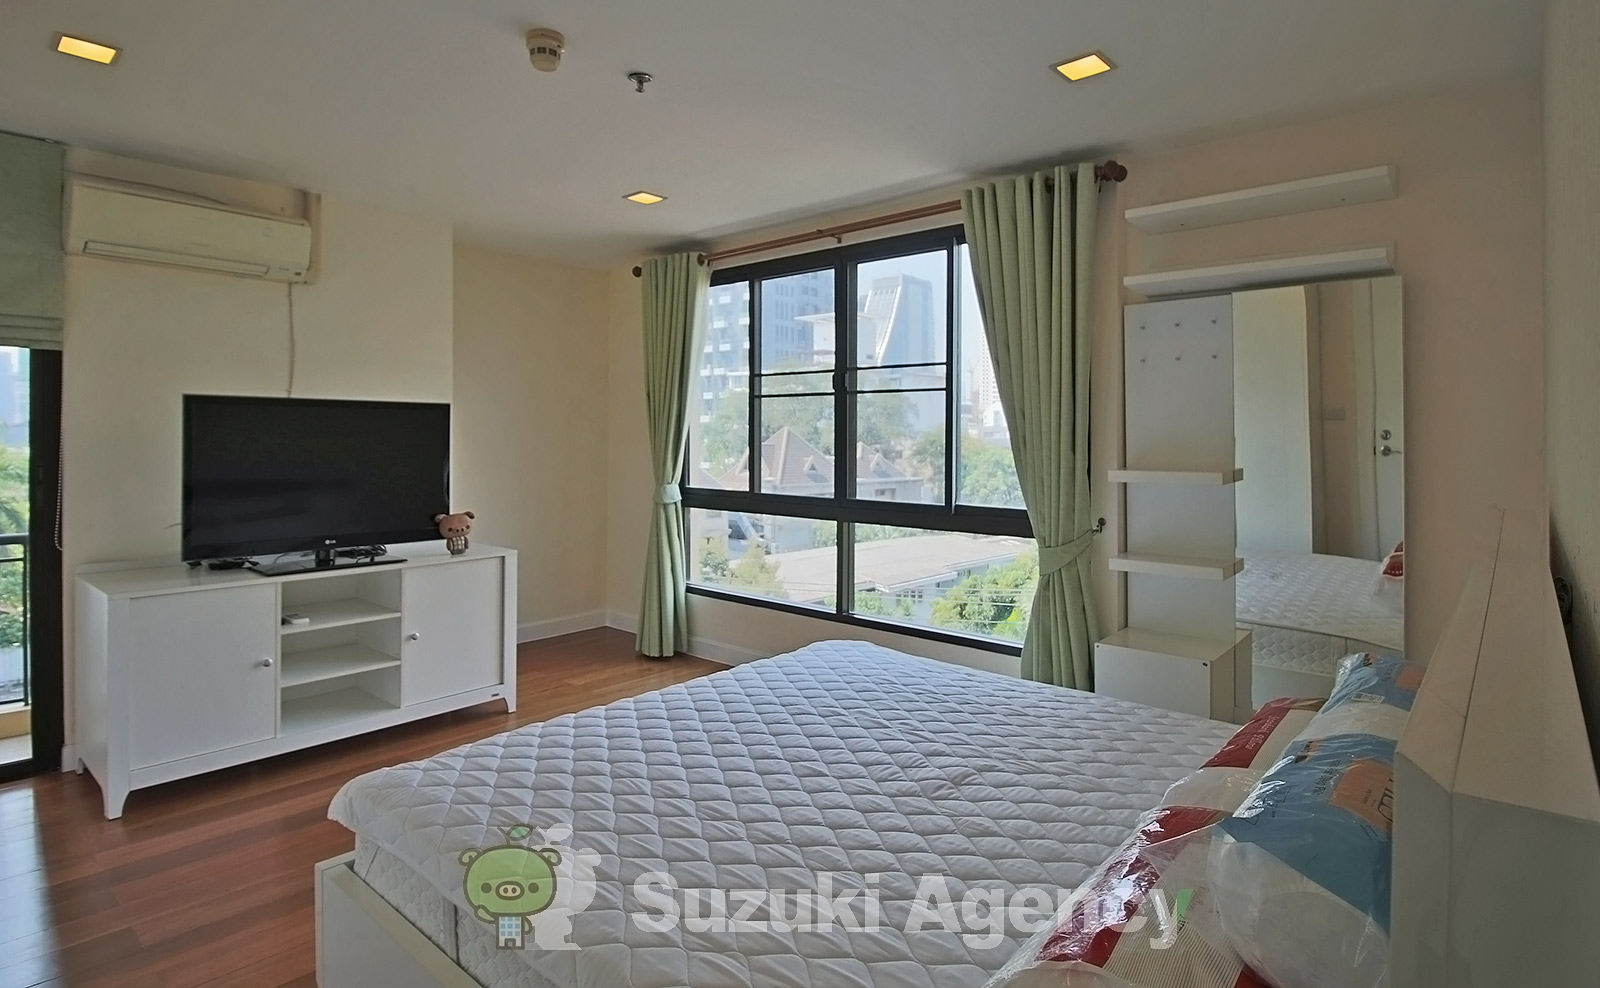 Prime Mansion Sukhumvit 31:2Bed Room Photos No.7